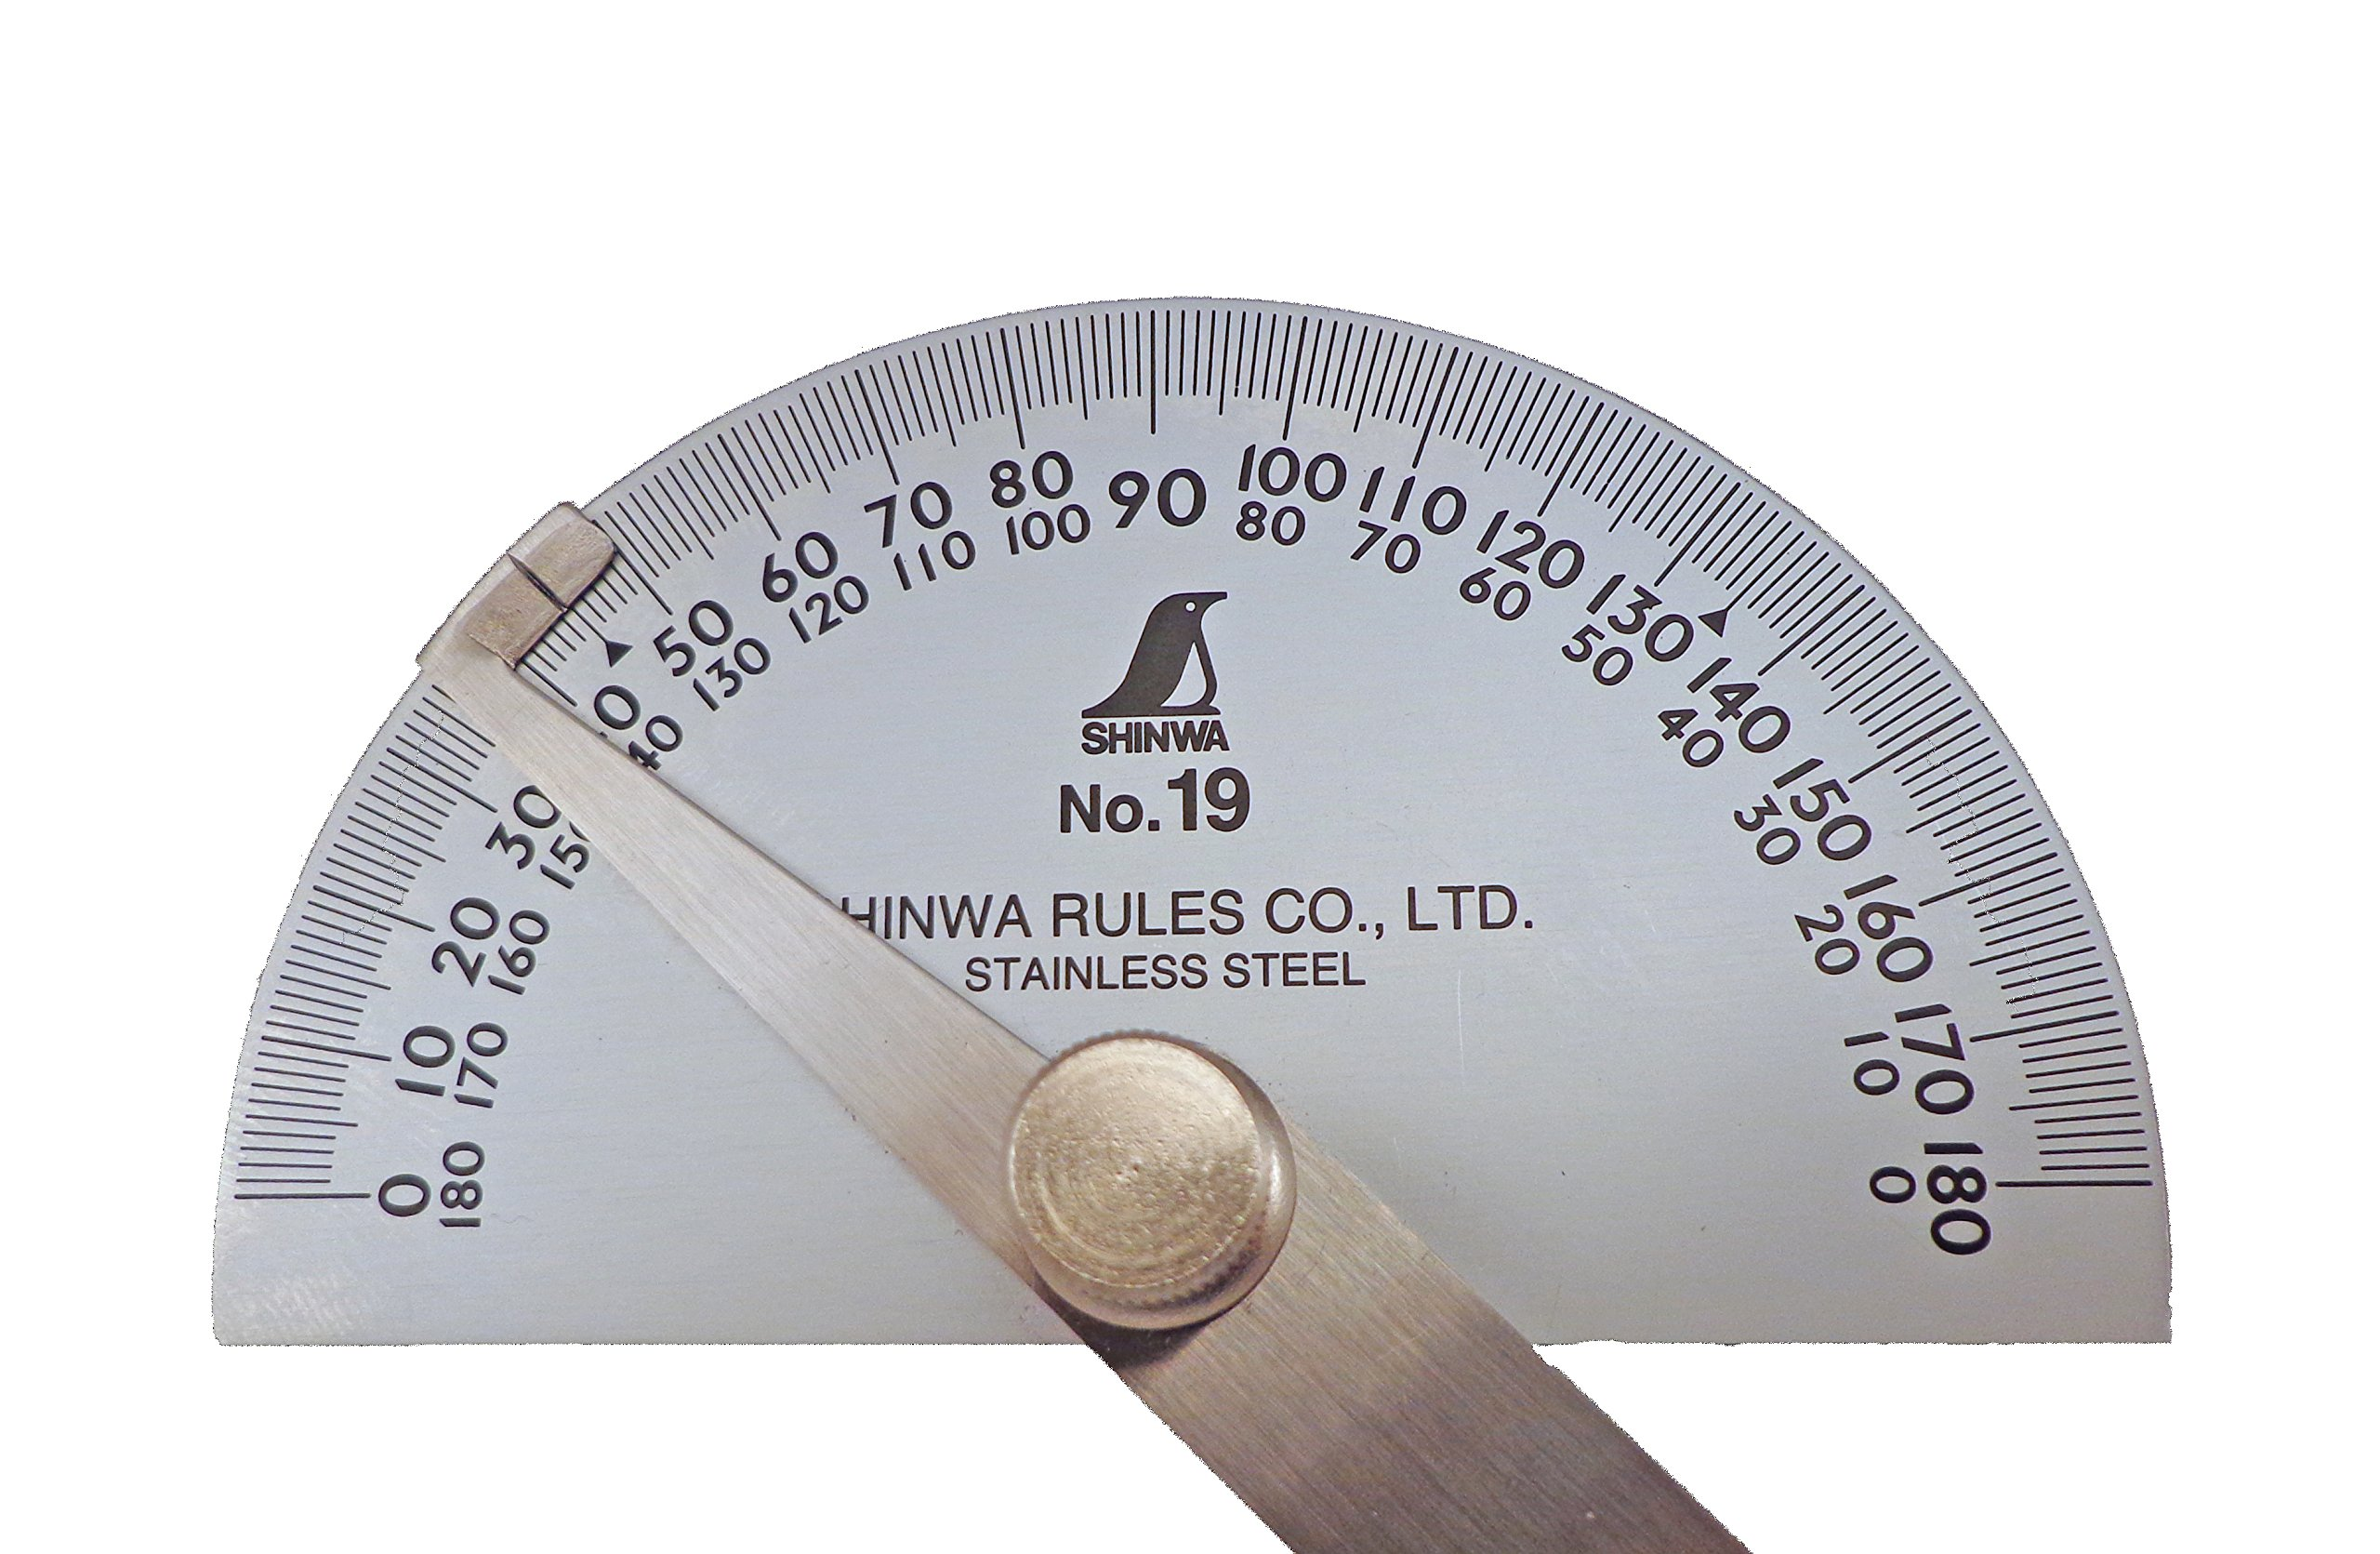 Shinwa Japanese #19 Stainless Steel Protractor 0-180 degrees with Round Head by Shinwa (Image #2)